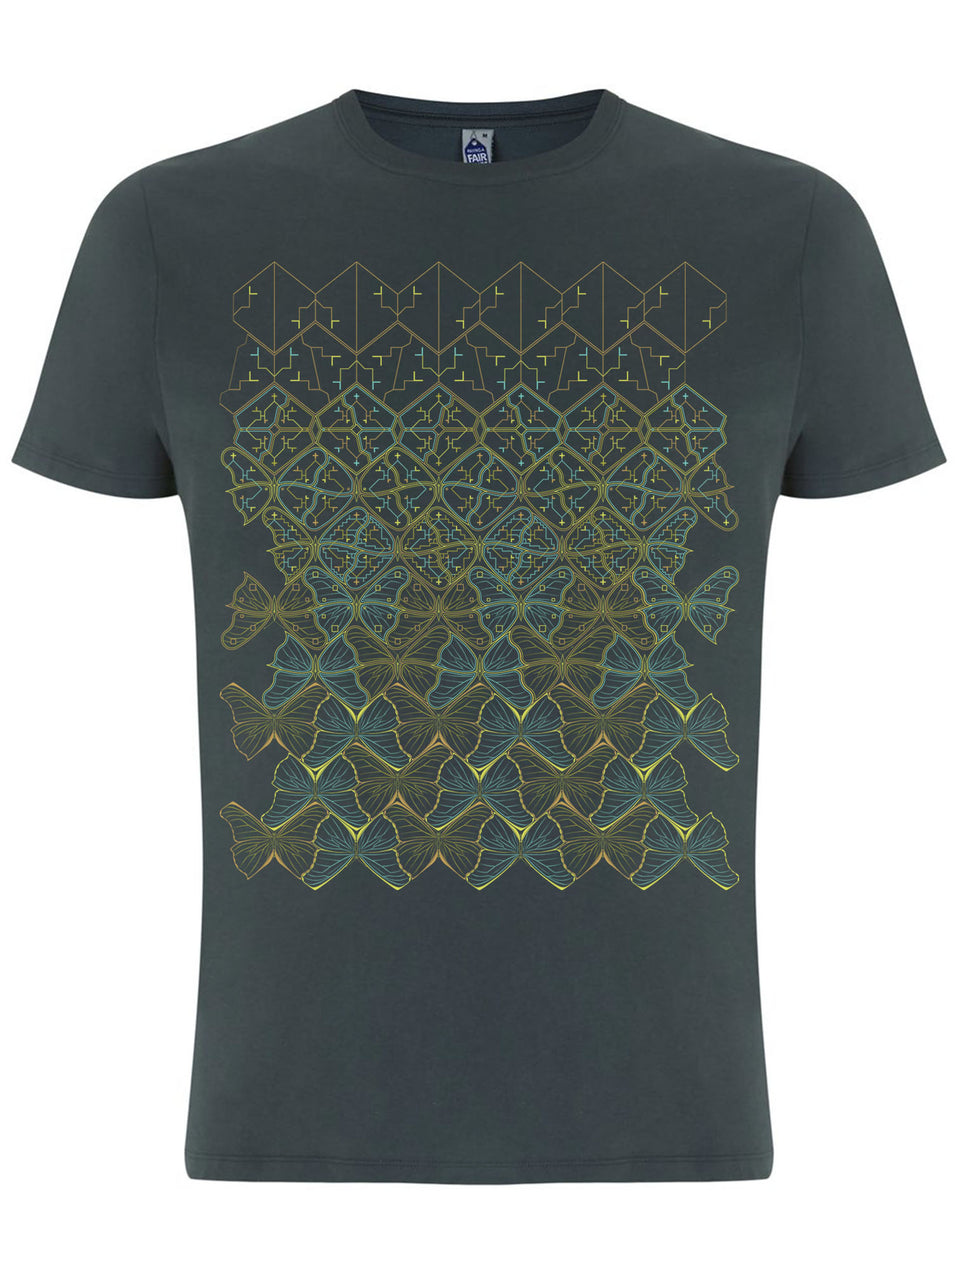 Butterfly Morph Made To Order Men T-Shirt - Light Charcoal